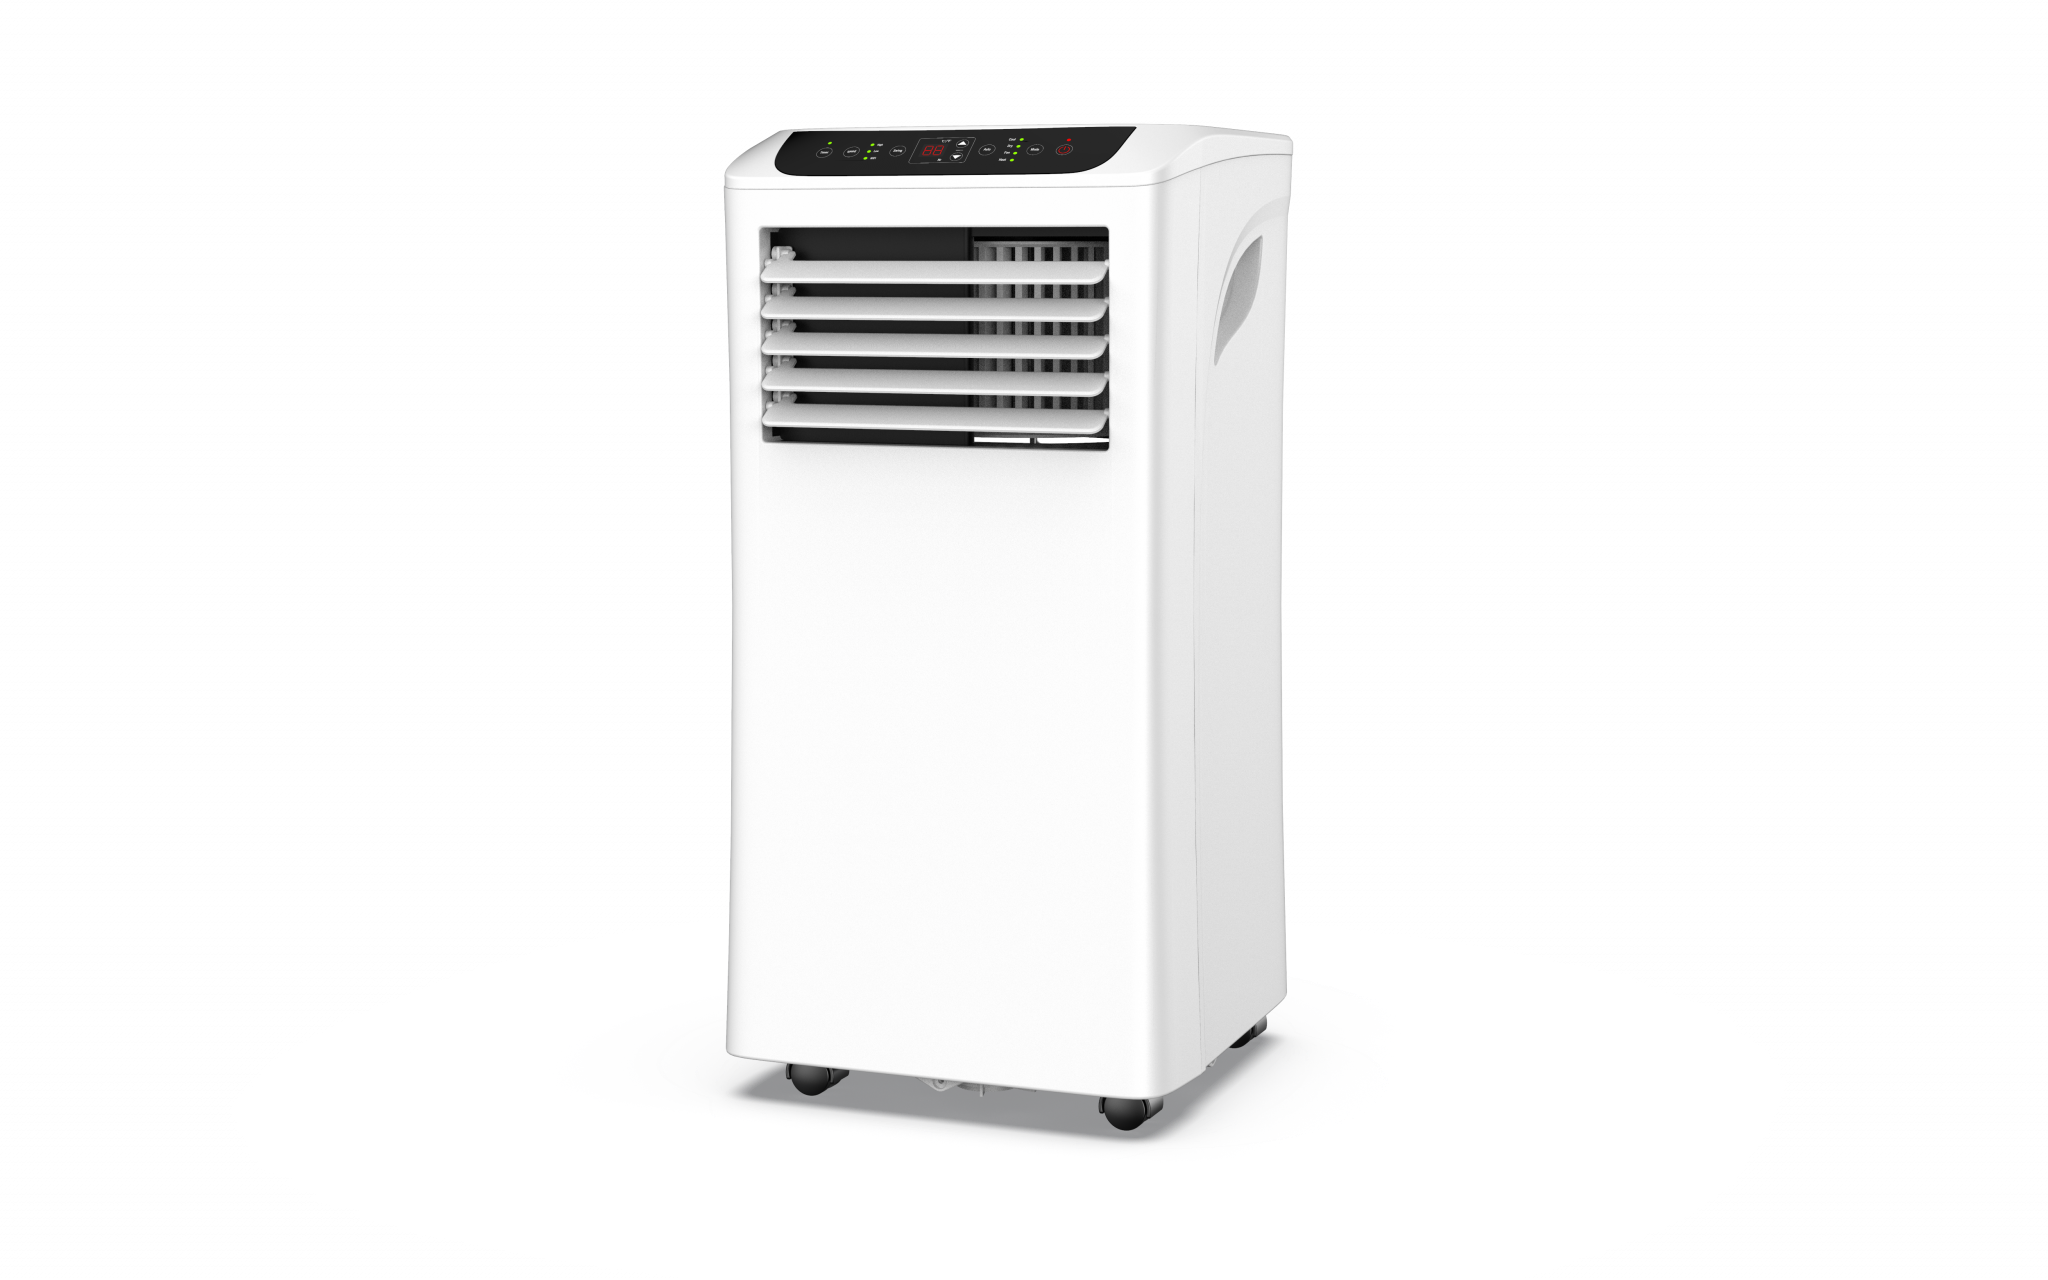 Meaco Launches New Range Of Quieter And More Energy Efficient Portable Air Conditioners Techbuzzireland